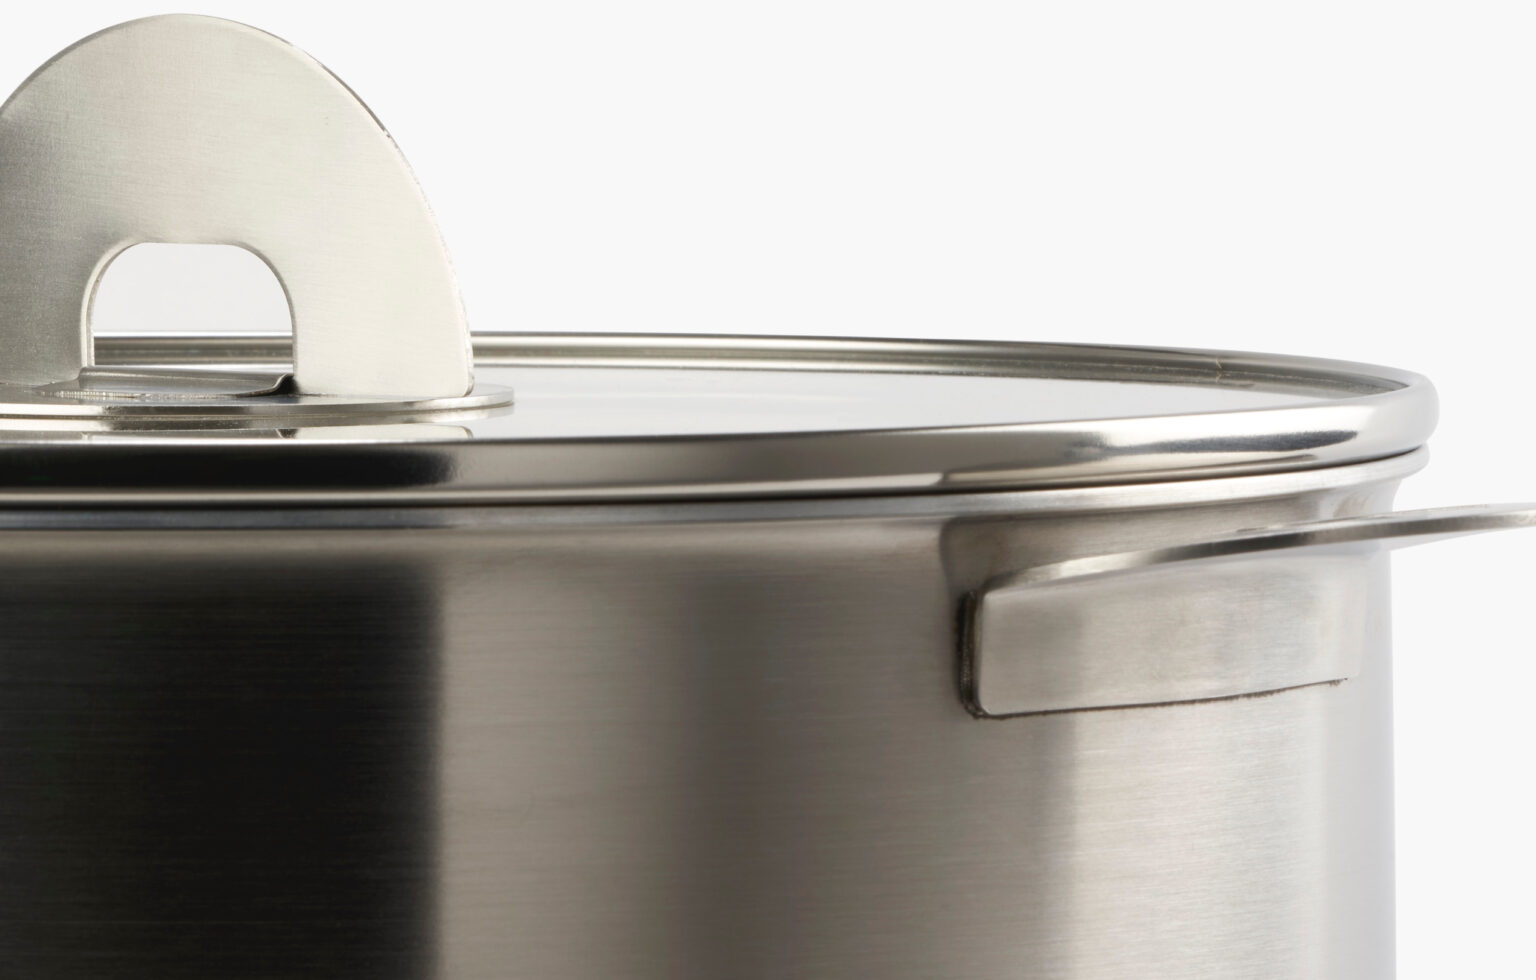 stainless steel cookware with bespoke laser welds